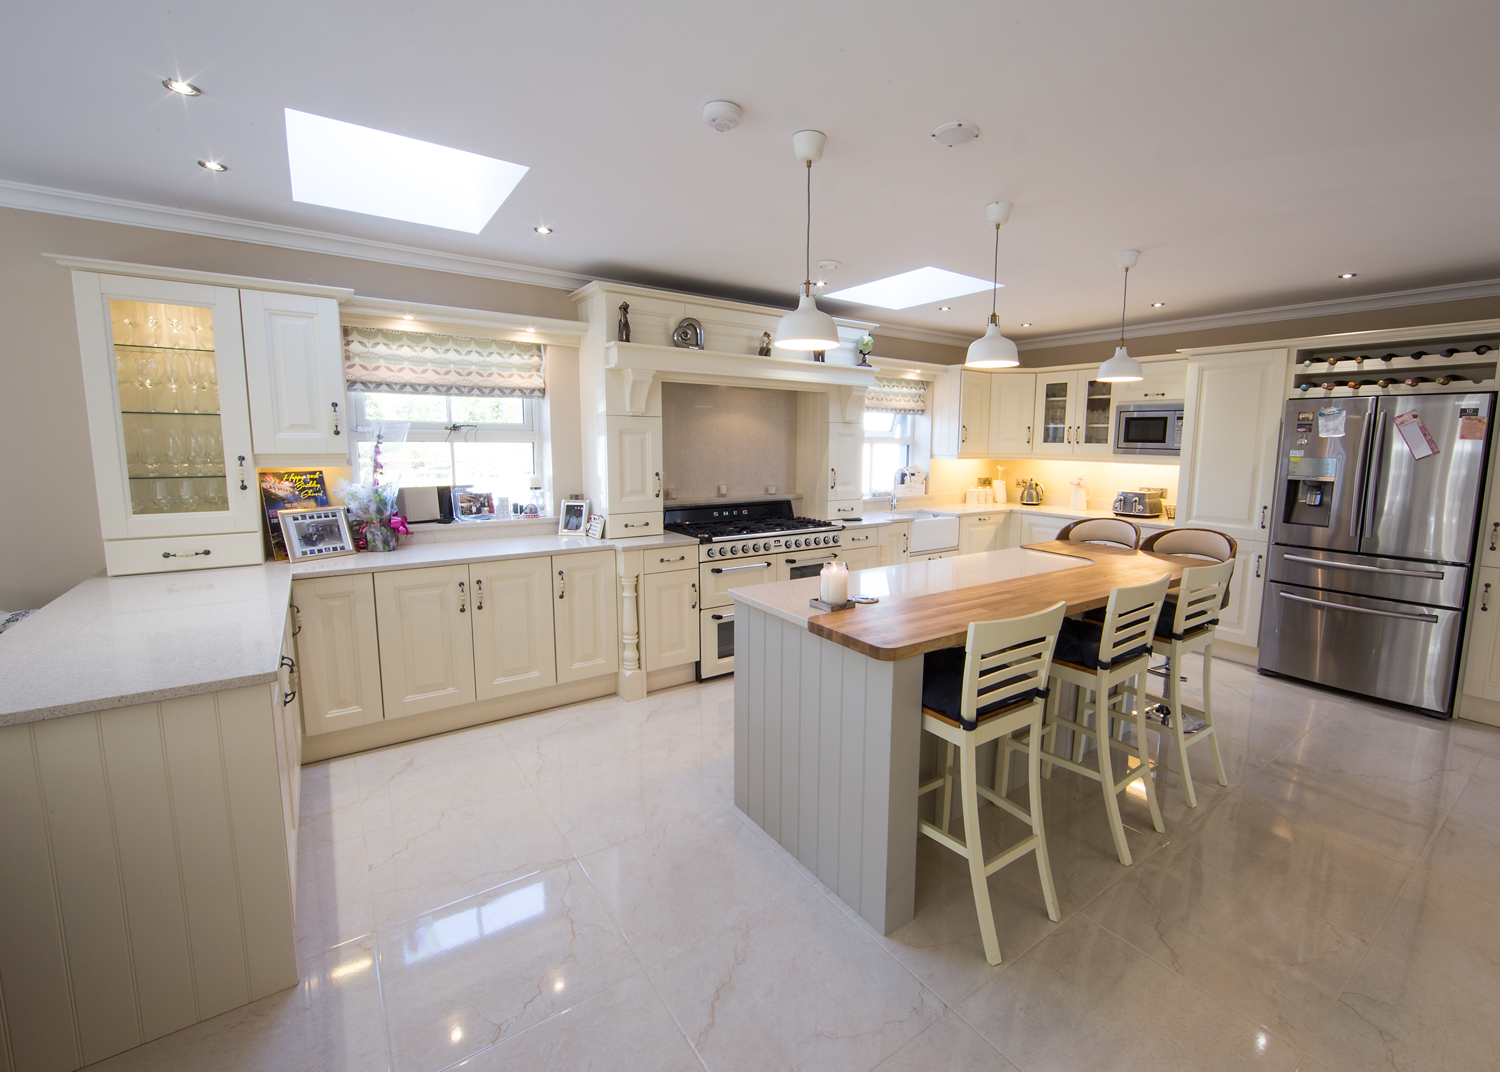 Ornan Jefferson Ivory Kitchen for Mr & Mrs Kelly for a home in Co Meath